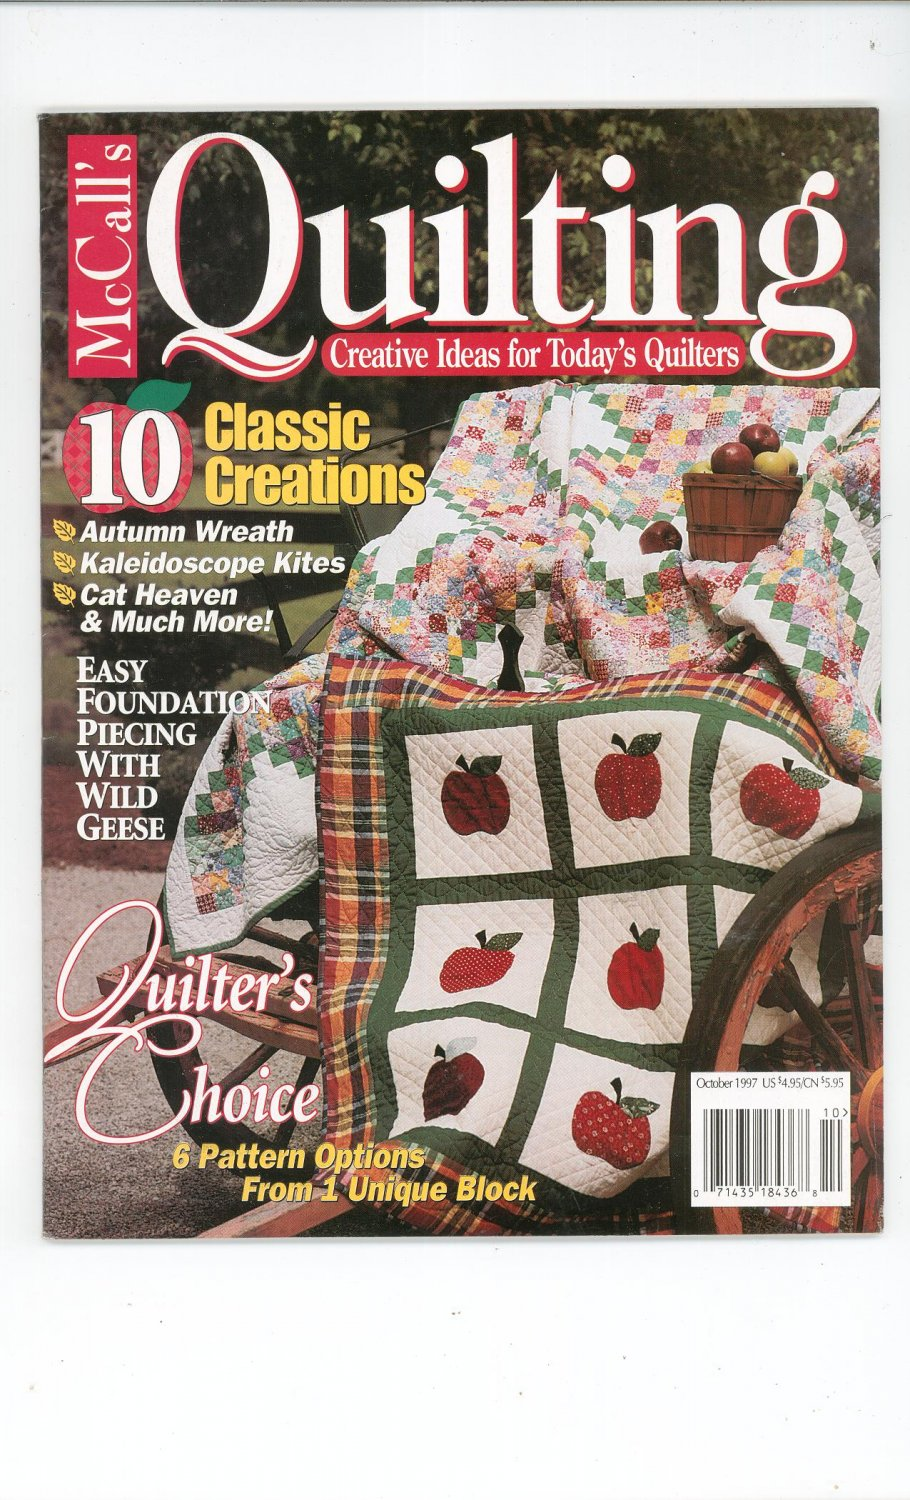 McCall's Quilting Magazine Back Issue October 1997